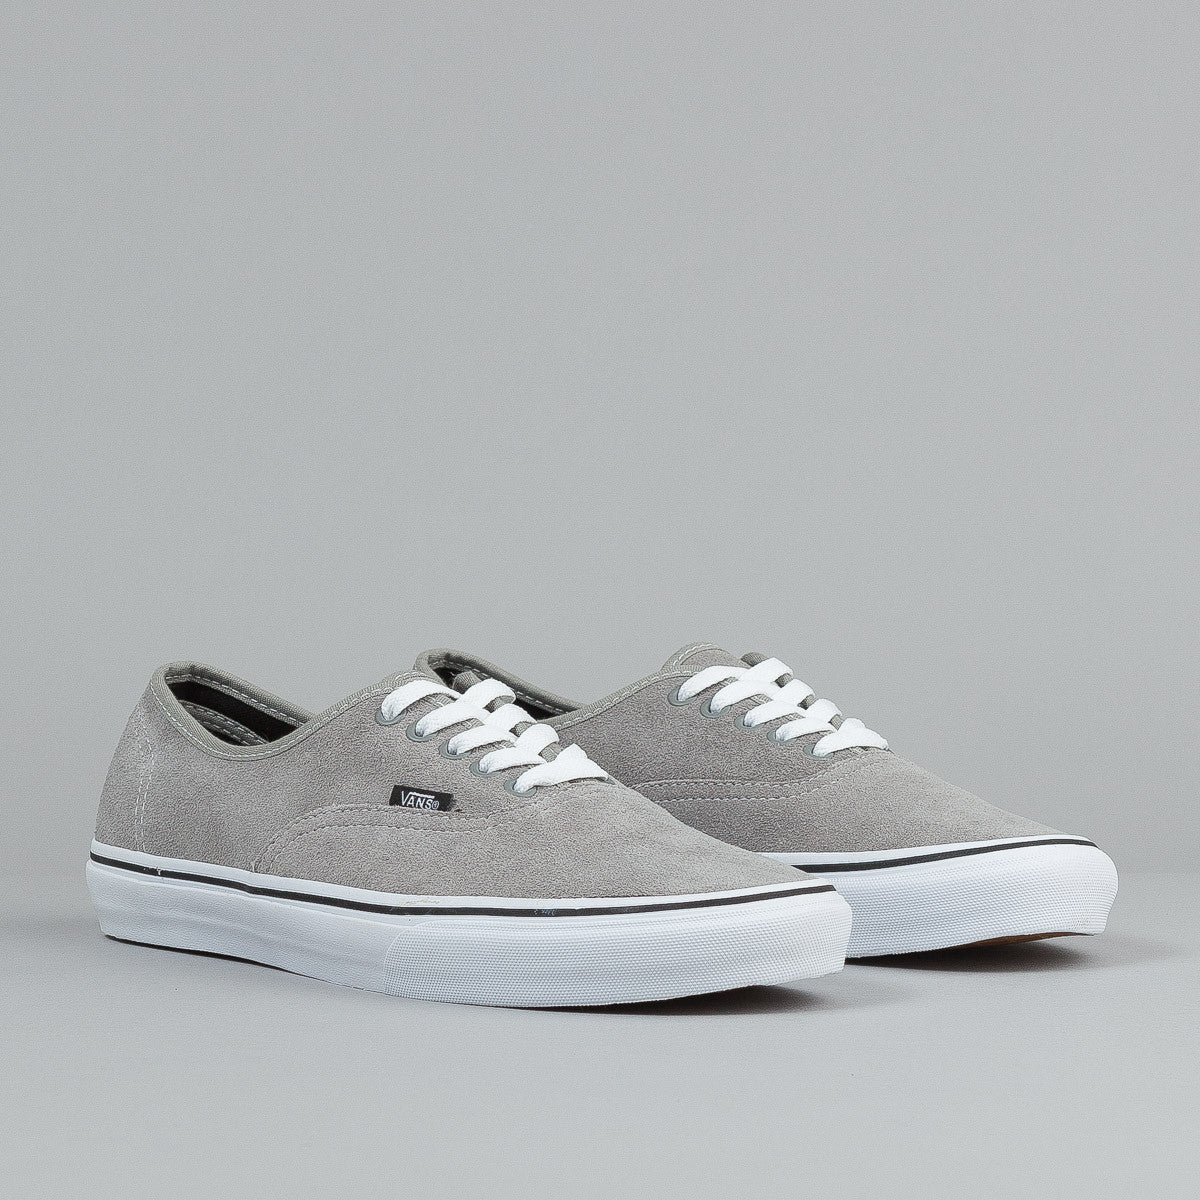 Vans Authentic Shoes - (Suede) Light Grey / True White